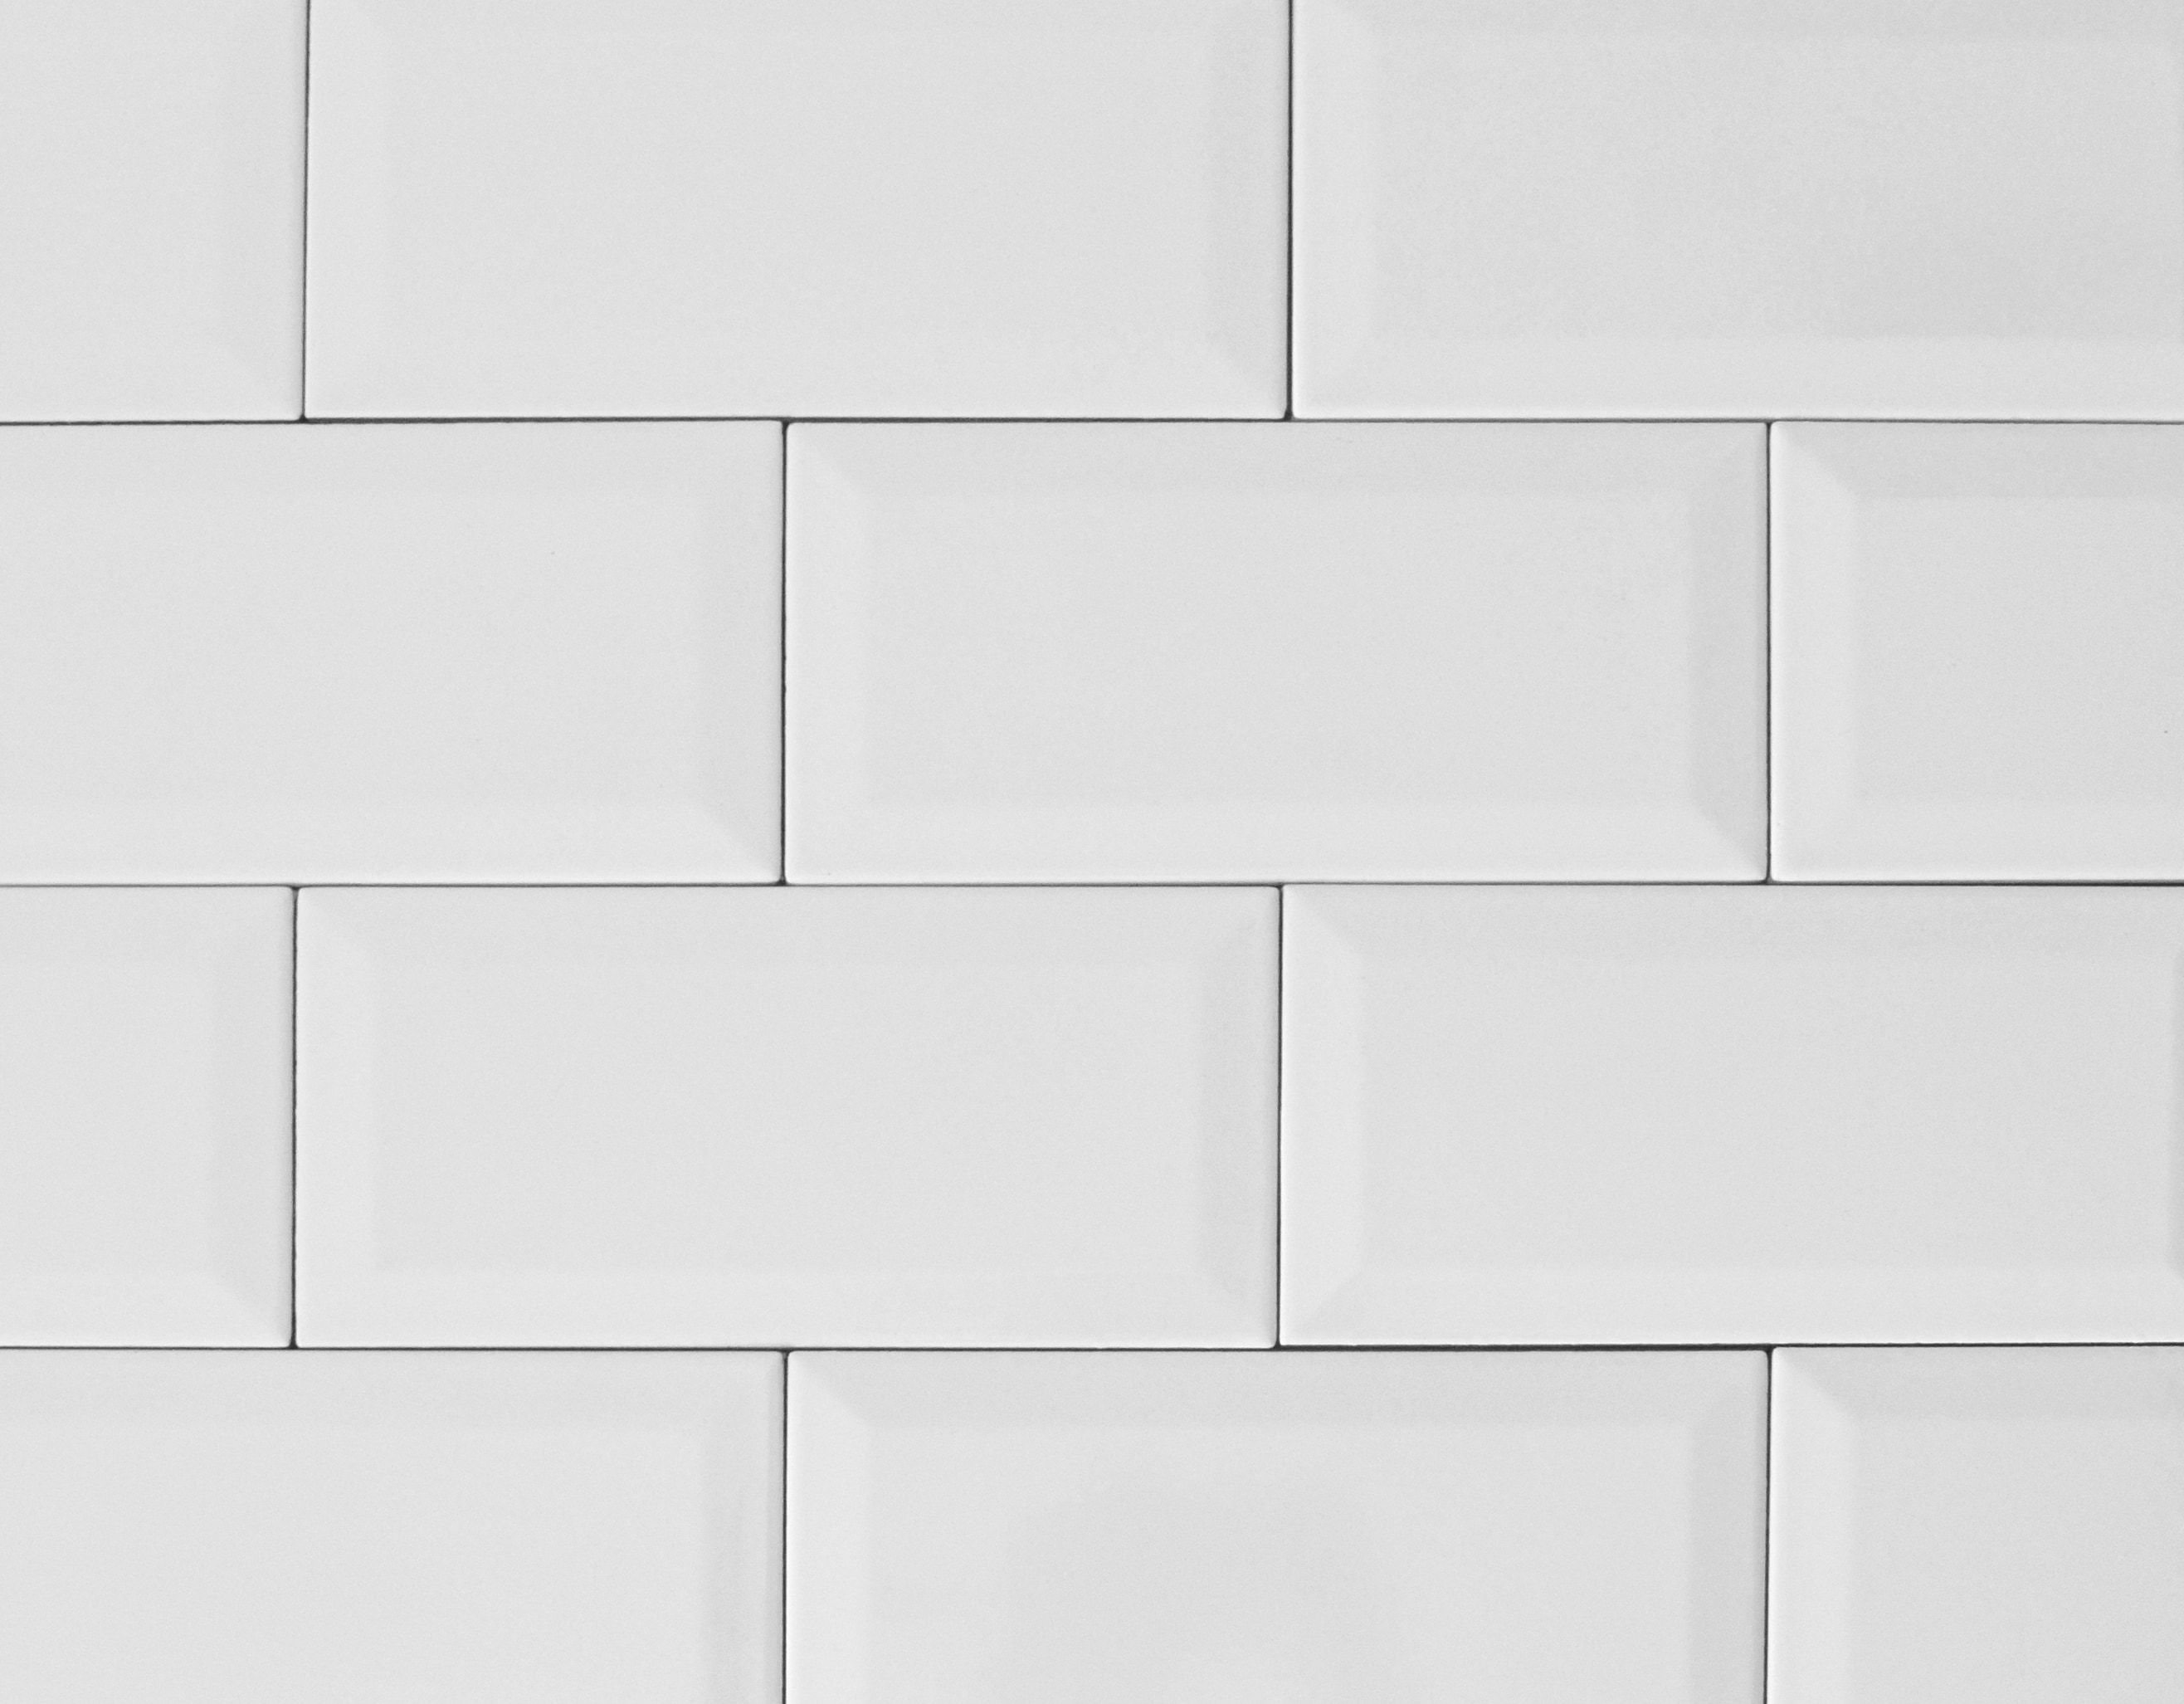 Ceramica splendore subway tile metro tile beveled 4 x 8 ceramica splendore subway tile metro tile beveled 4 x 8 glazed white dailygadgetfo Gallery